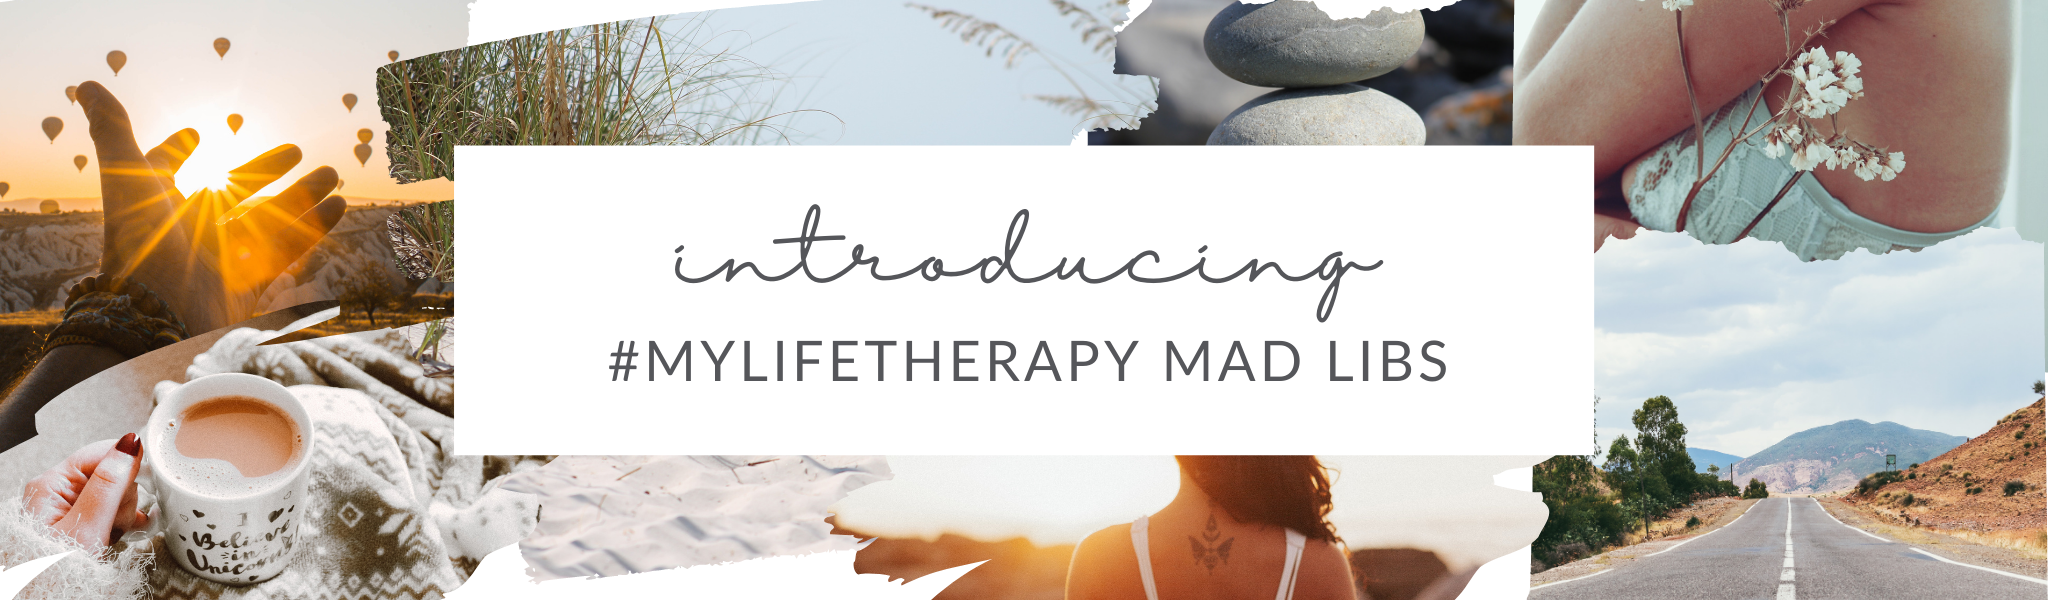 MyLifetherapy